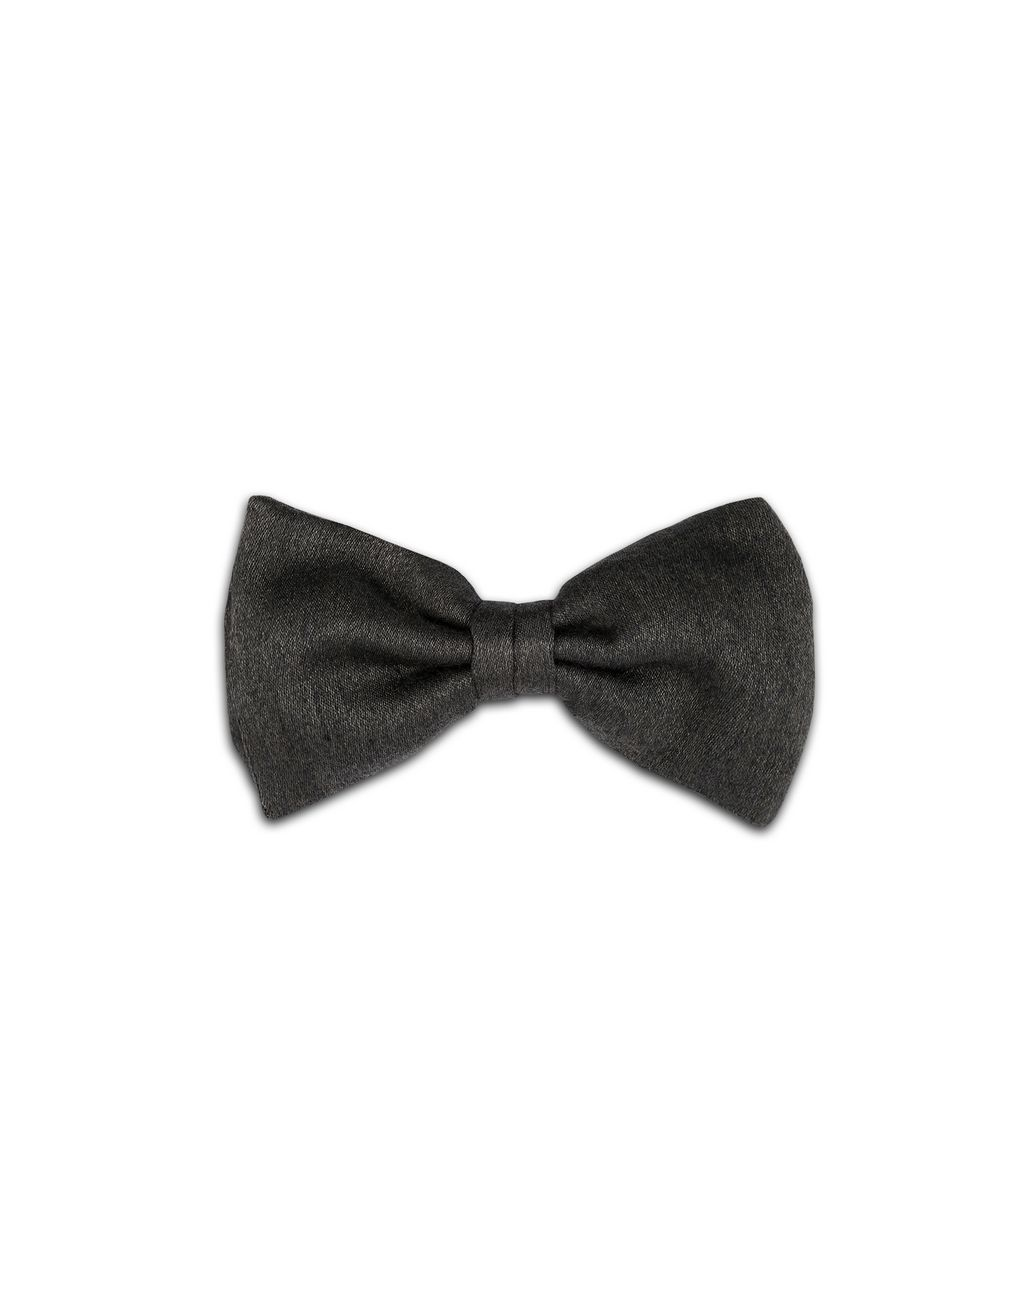 BRIONI Graphite Bow Tie Bow Ties & Cummerbunds Man f